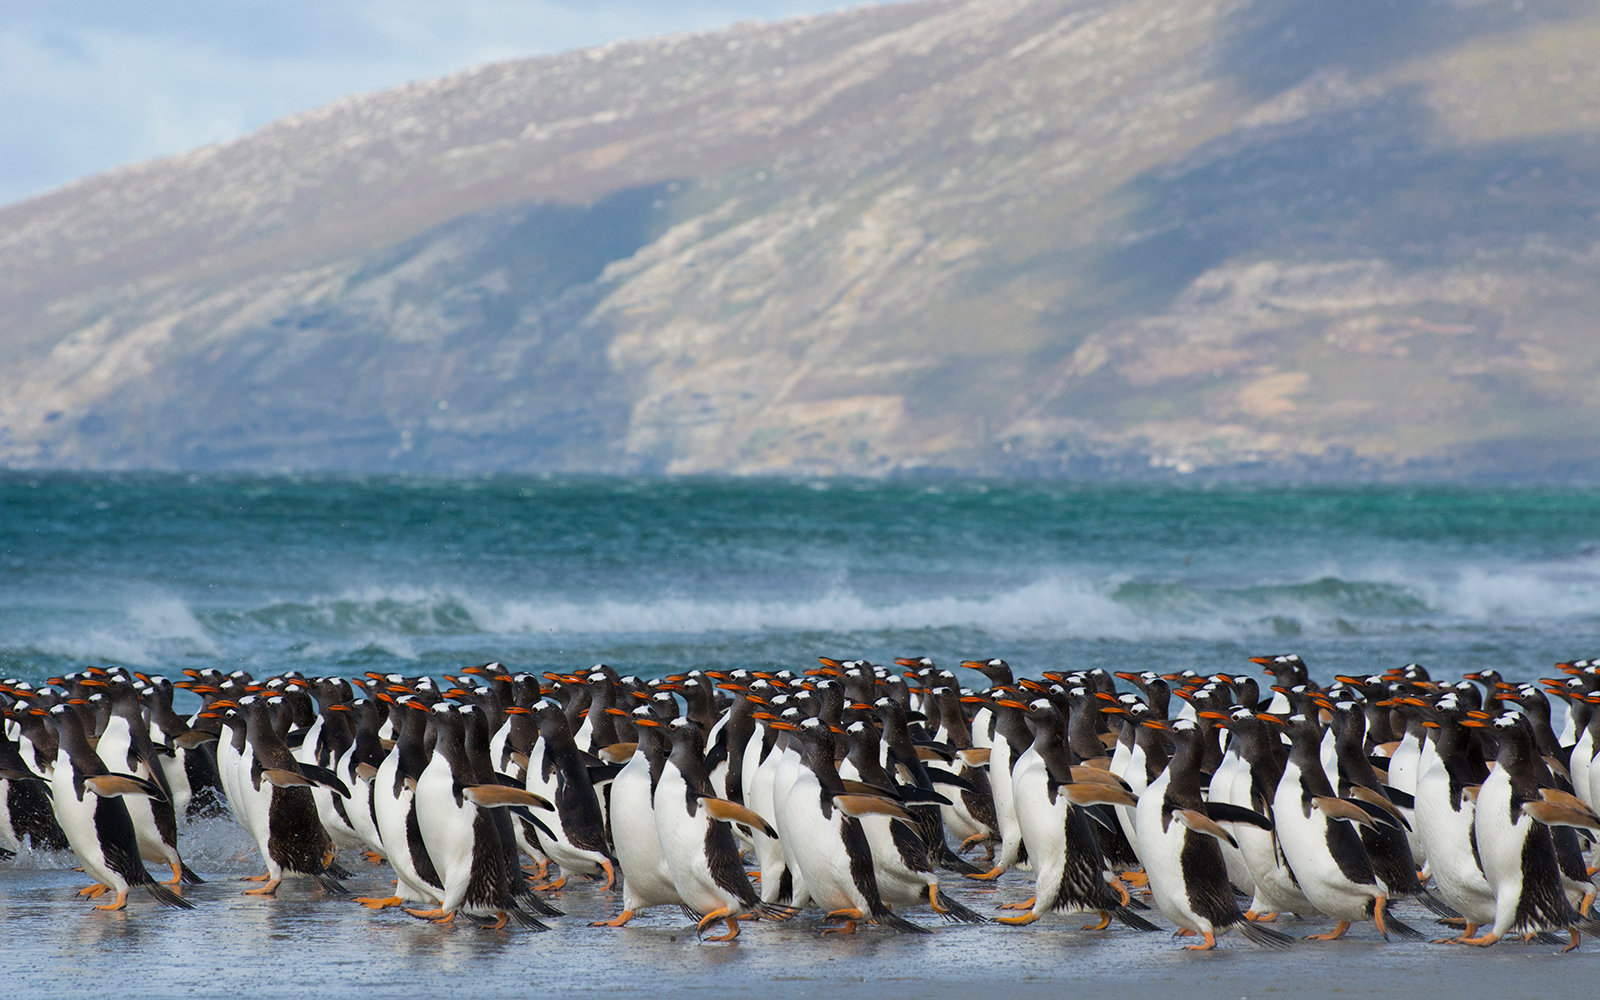 Gentoo penguins Pygoscelis papua rushing into water, Saunders Island, Falkland Islands